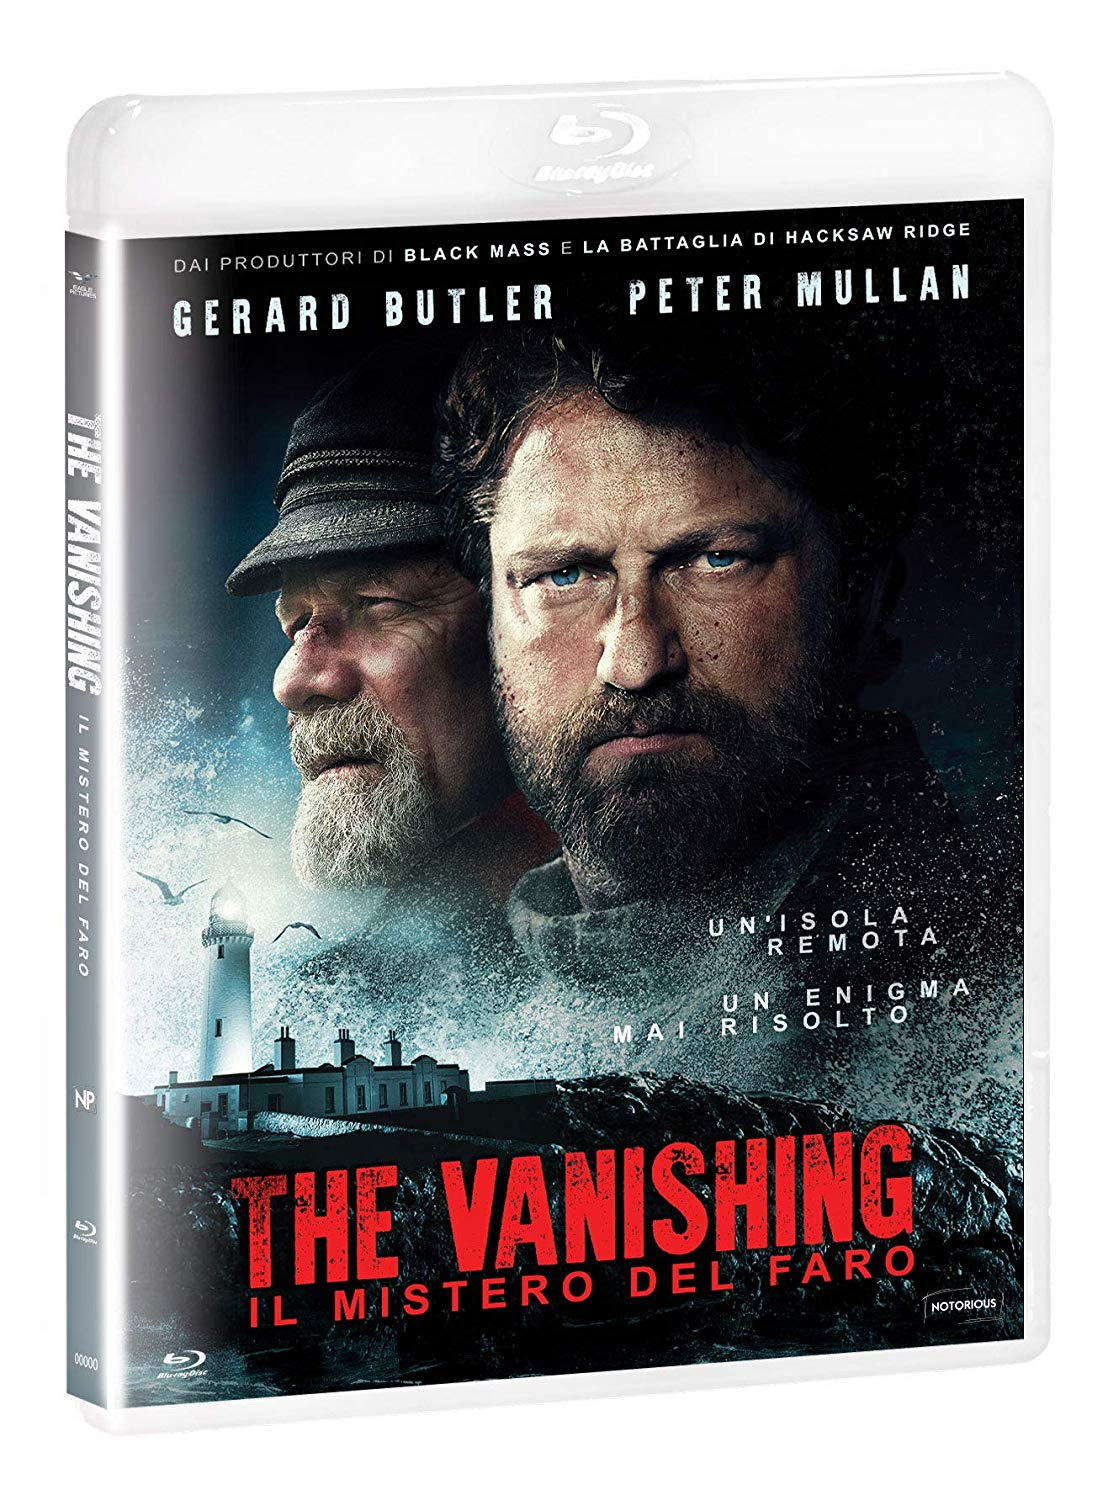 THE VANISHING - IL MISTERO DEL FARO - BLU RAY